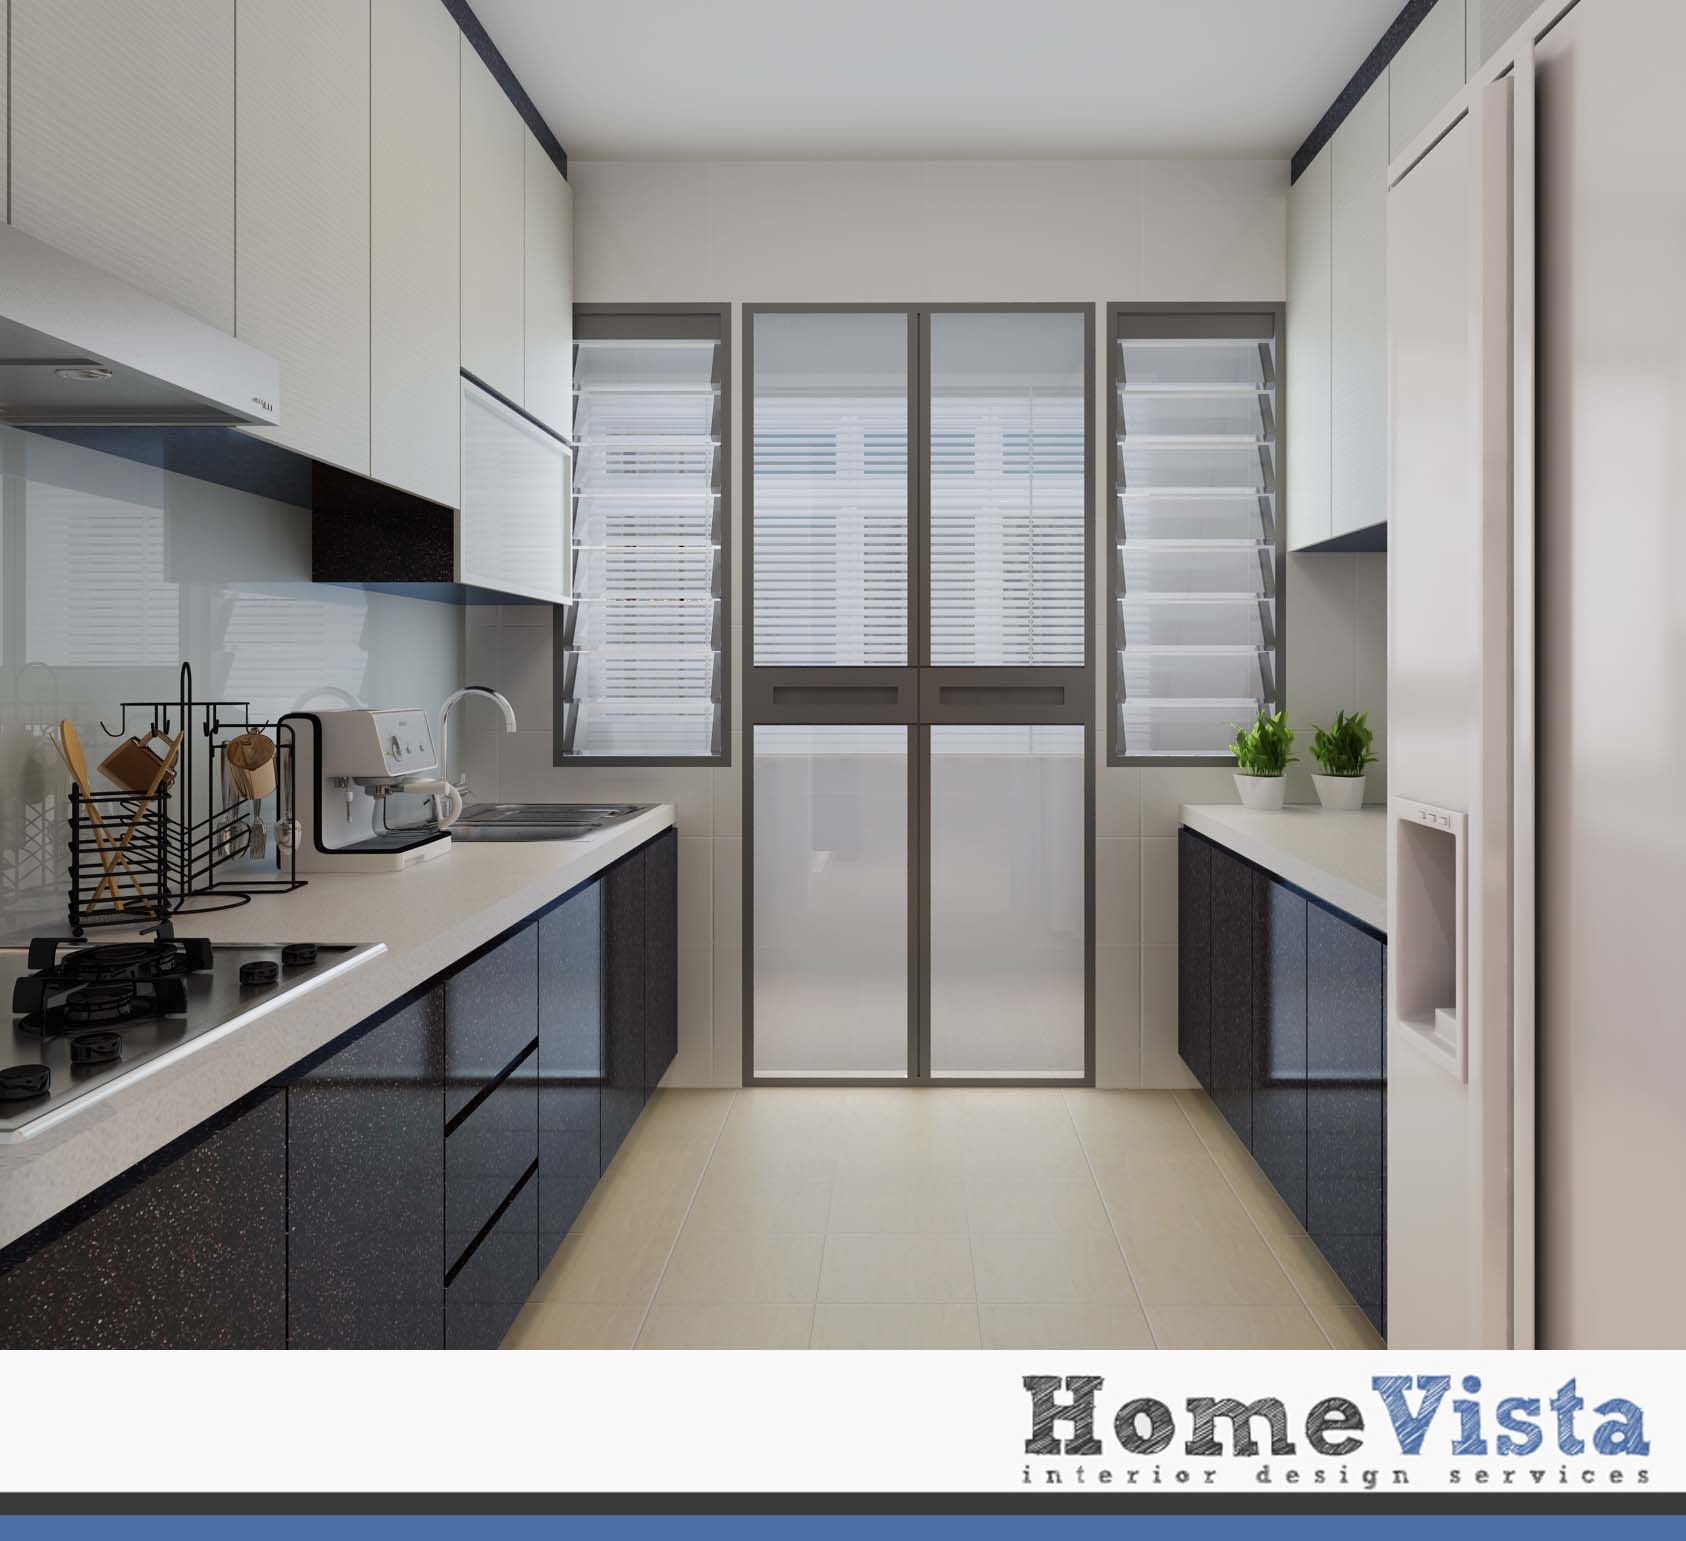 Kitchen Interior Design Singapore: 4 Room BTO - Yishun HDB BTO - HomeVista